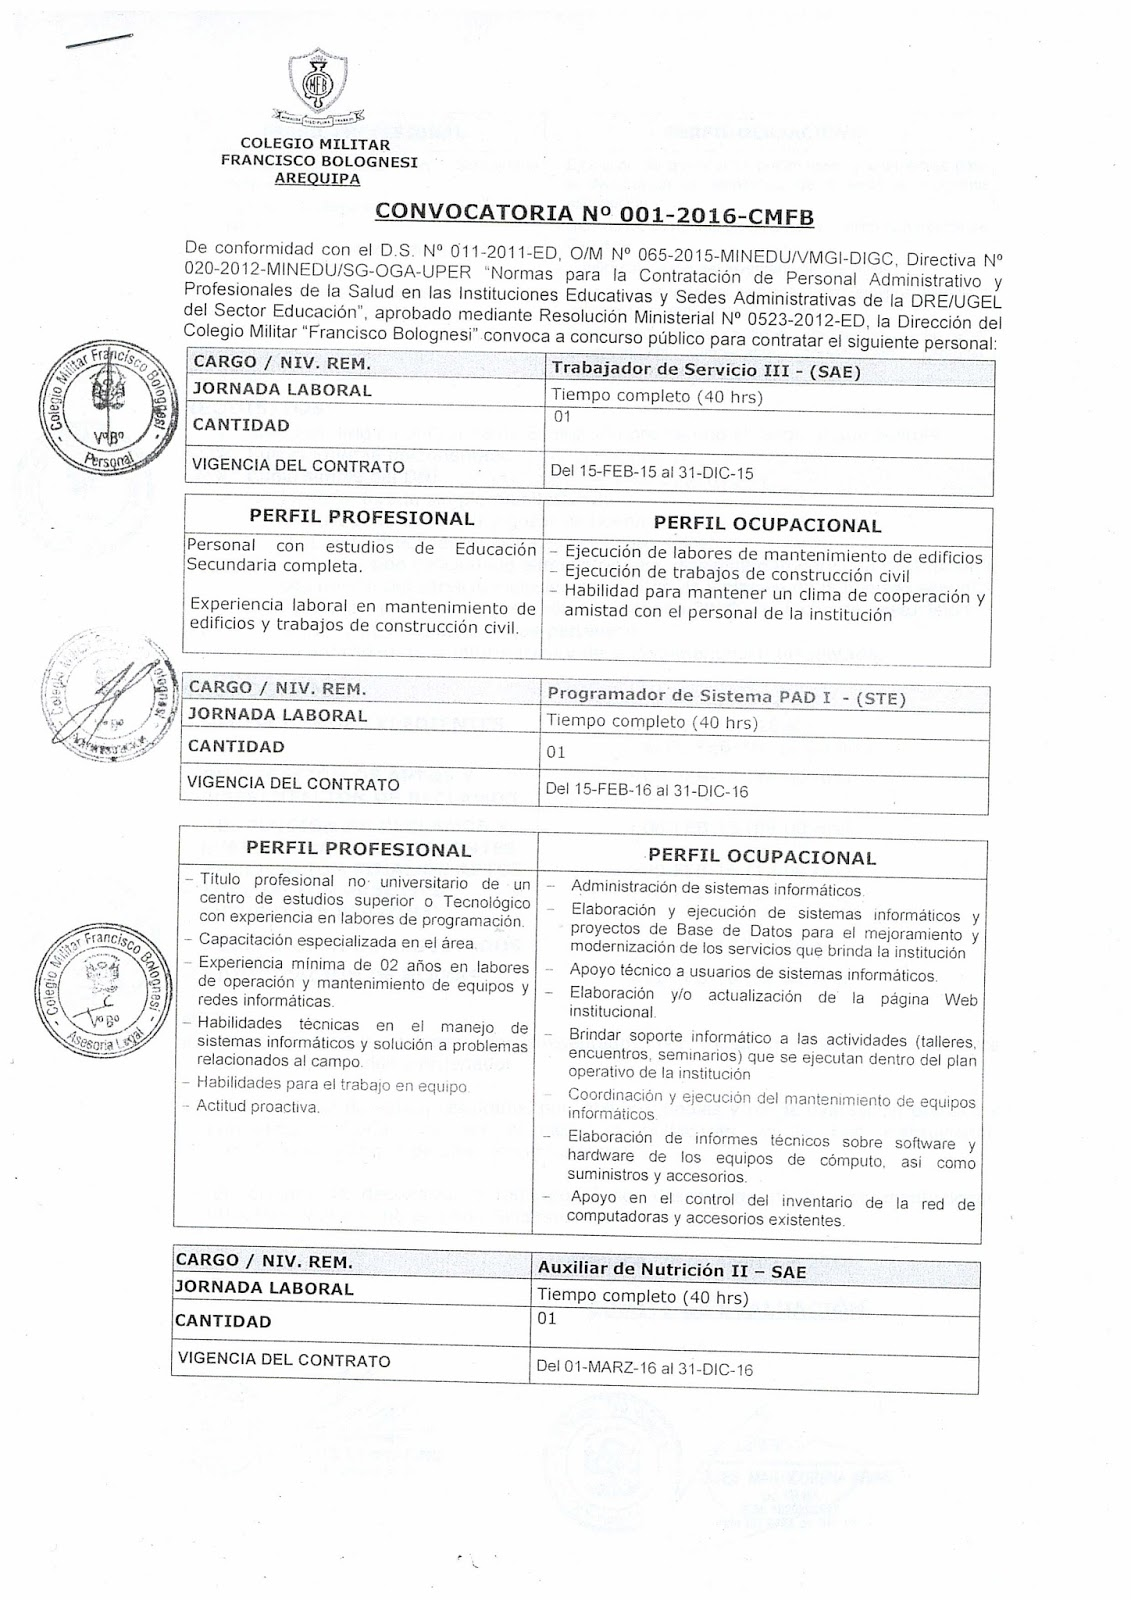 Convocatoria n 001 2016 cmfb noticias m s importantes for Convocatoria concurso docente 2016